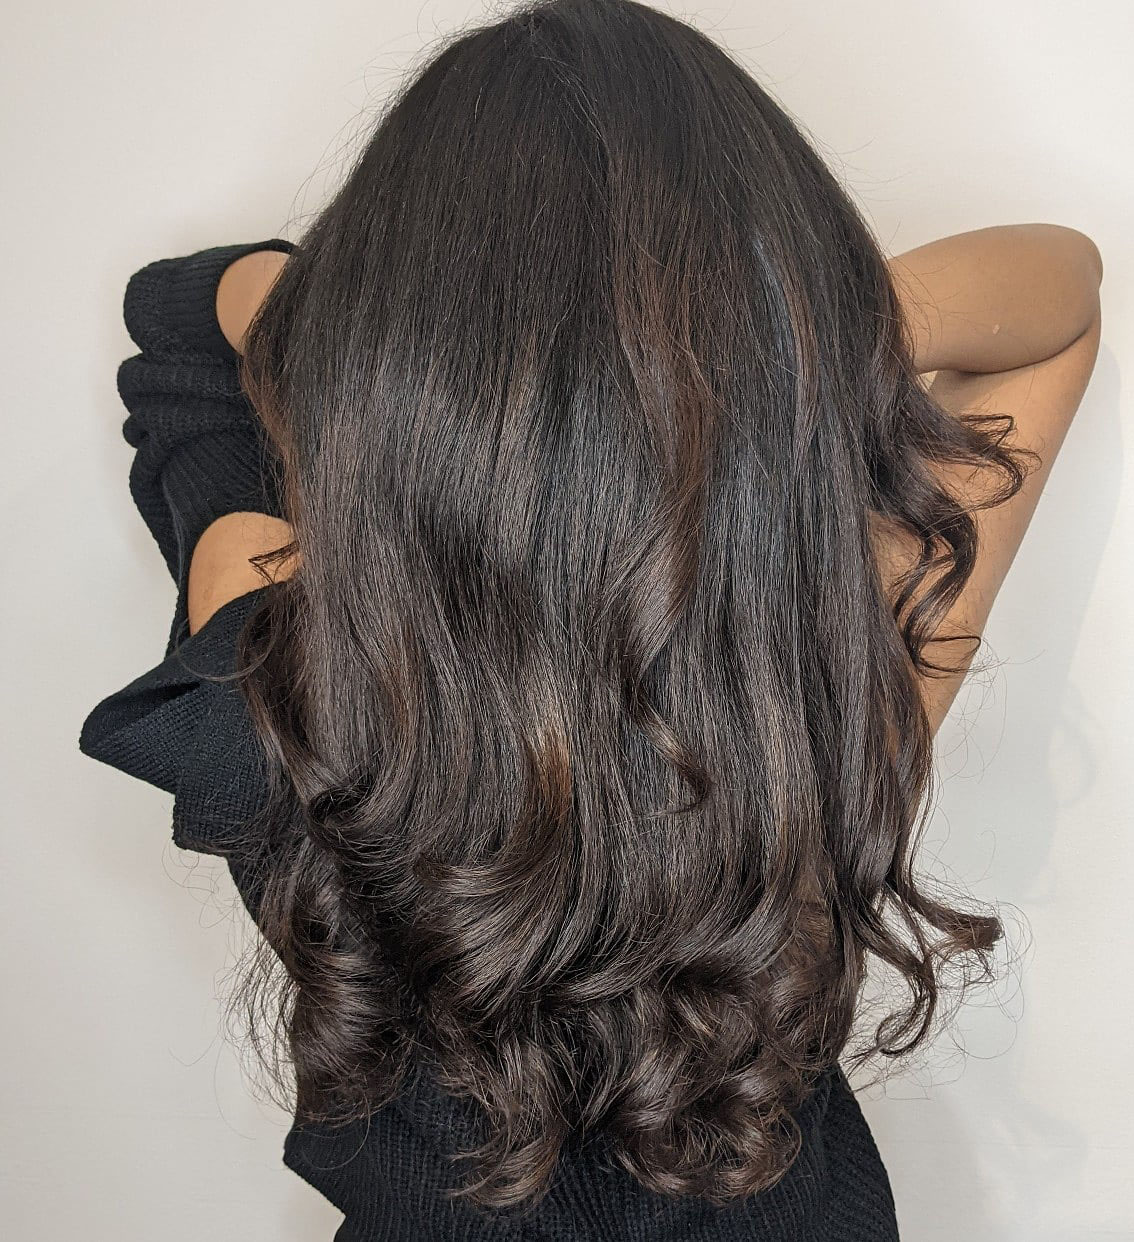 hair-blowout-downtown-chicago